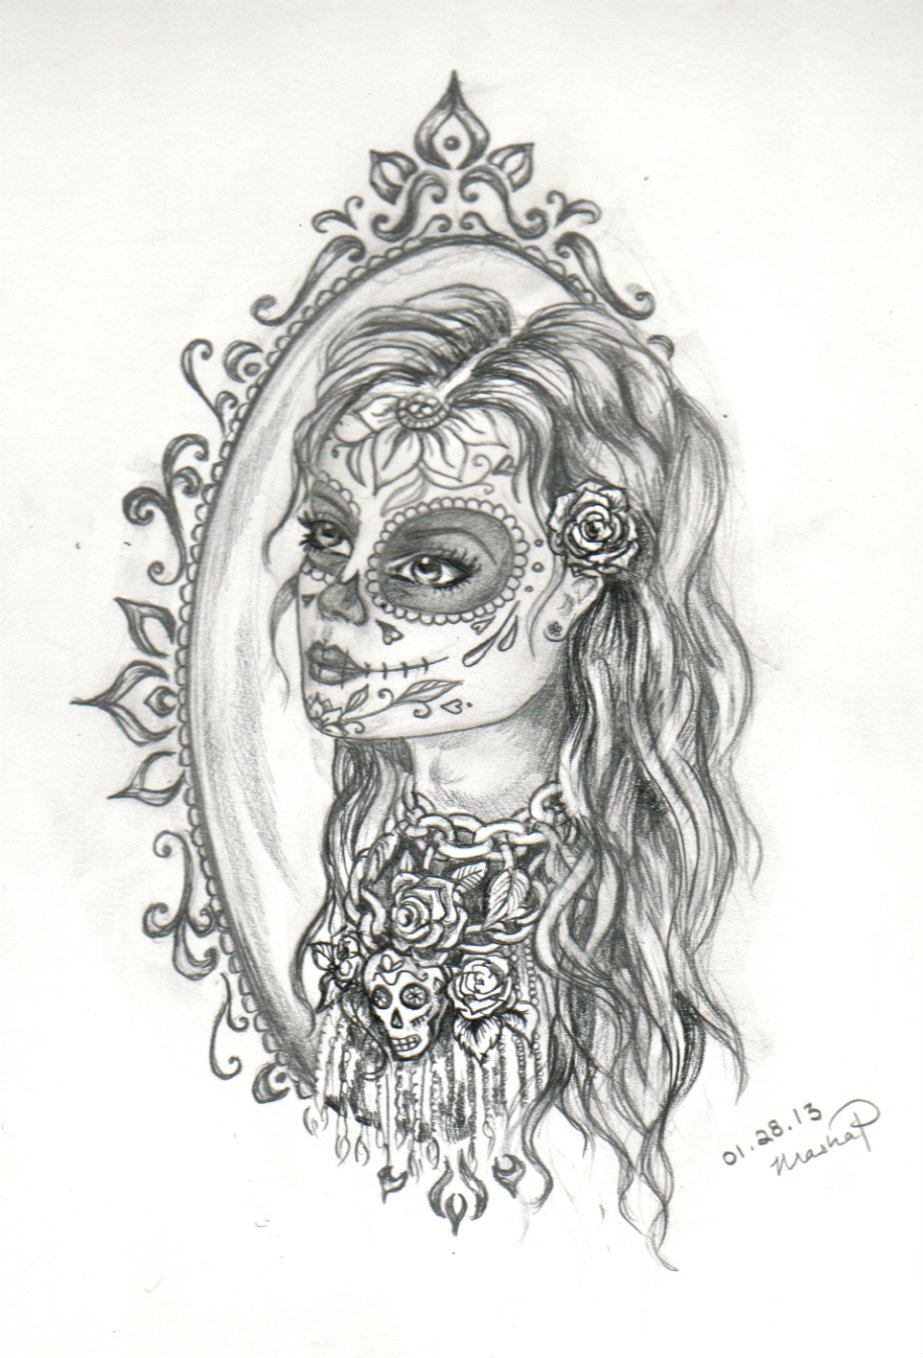 Tattoo Design/Idea by mashamanya on DeviantArt